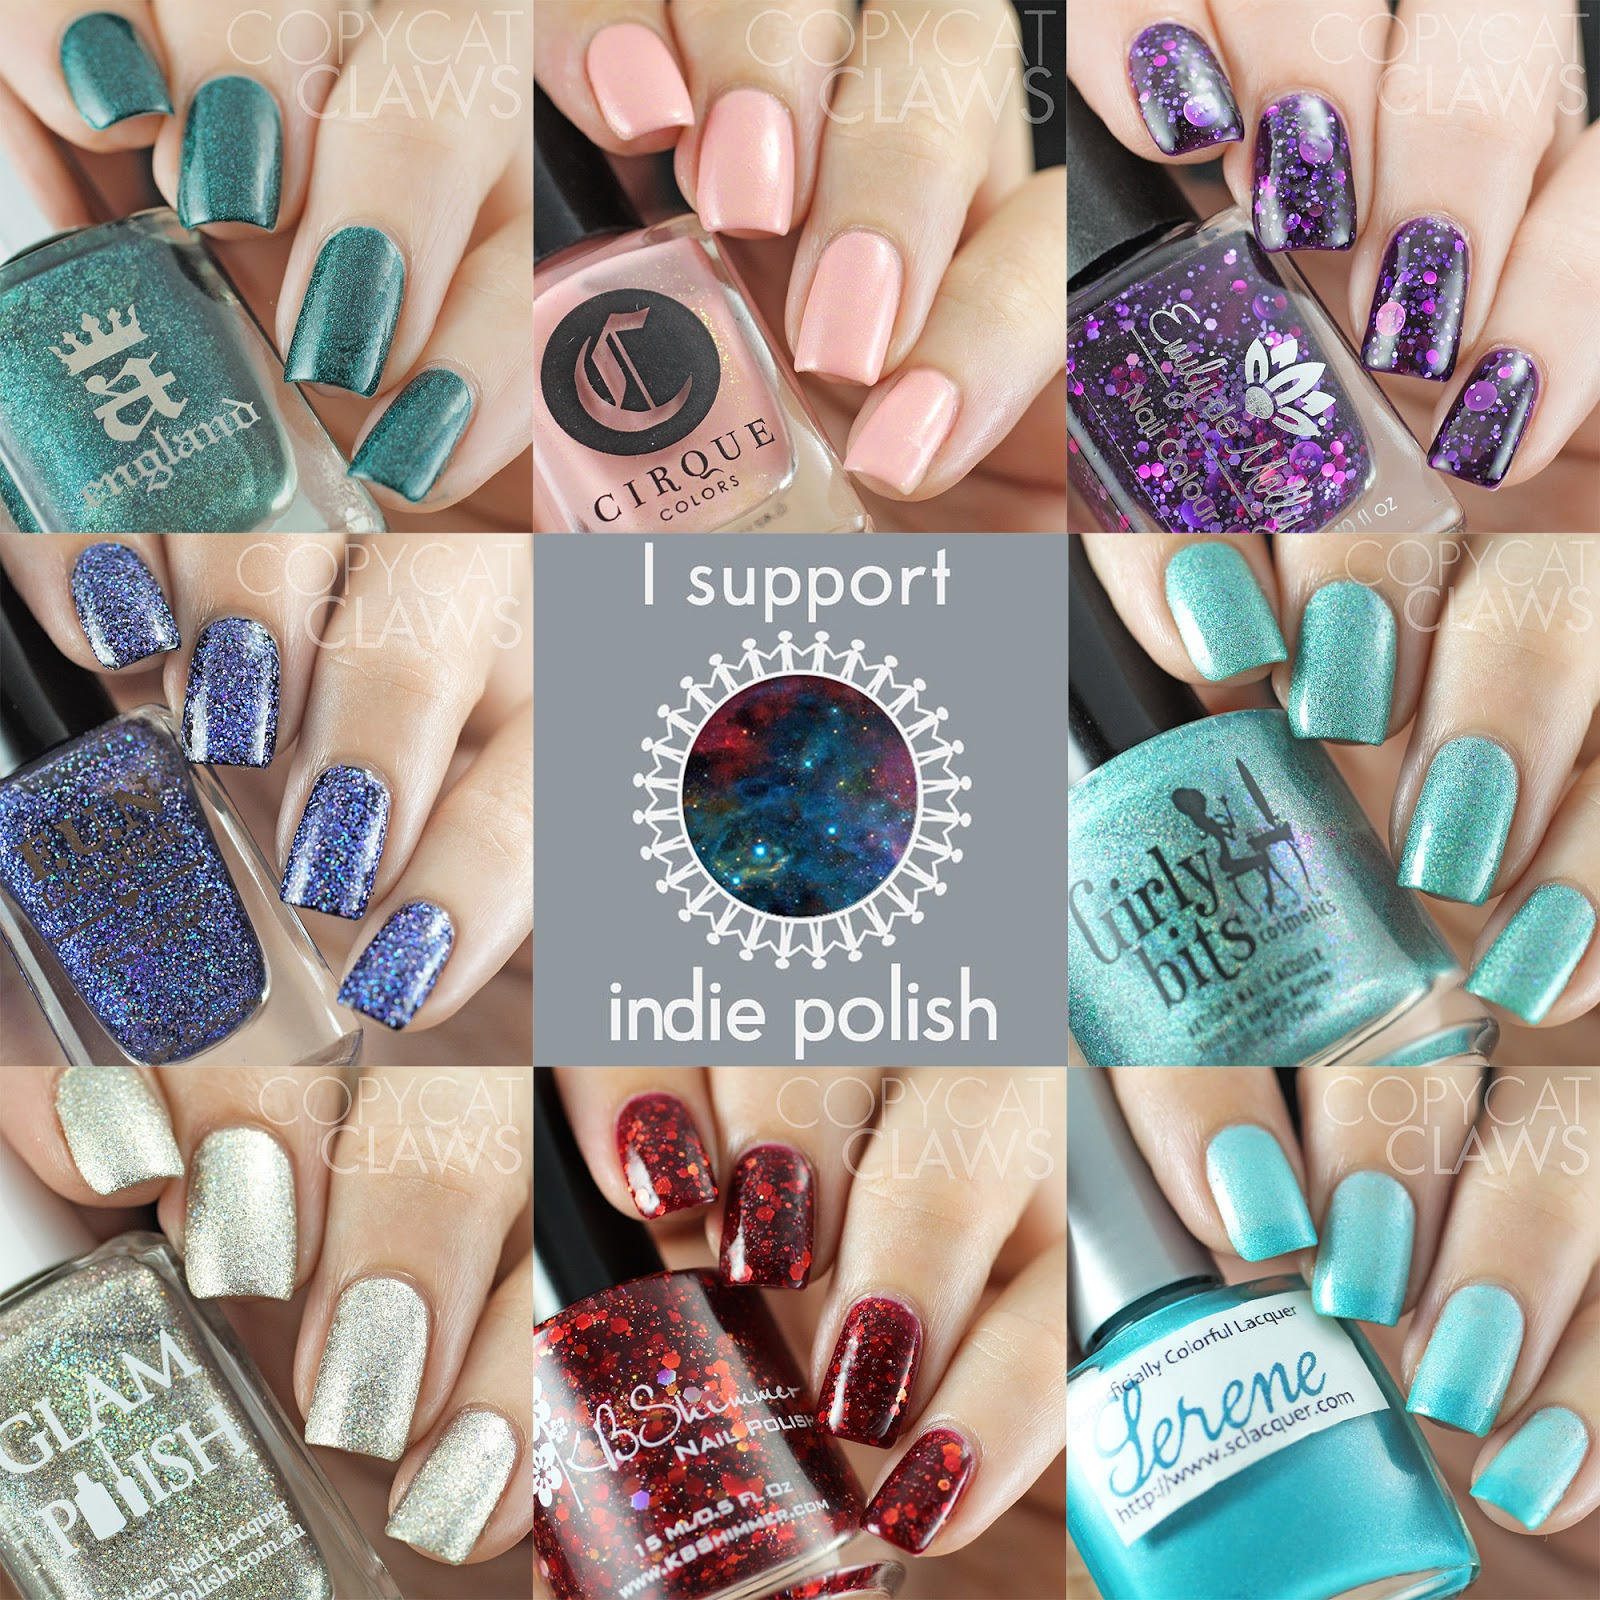 Copycat Claws: #ITRUSTINDIES - Indie Nail Polish Swatches